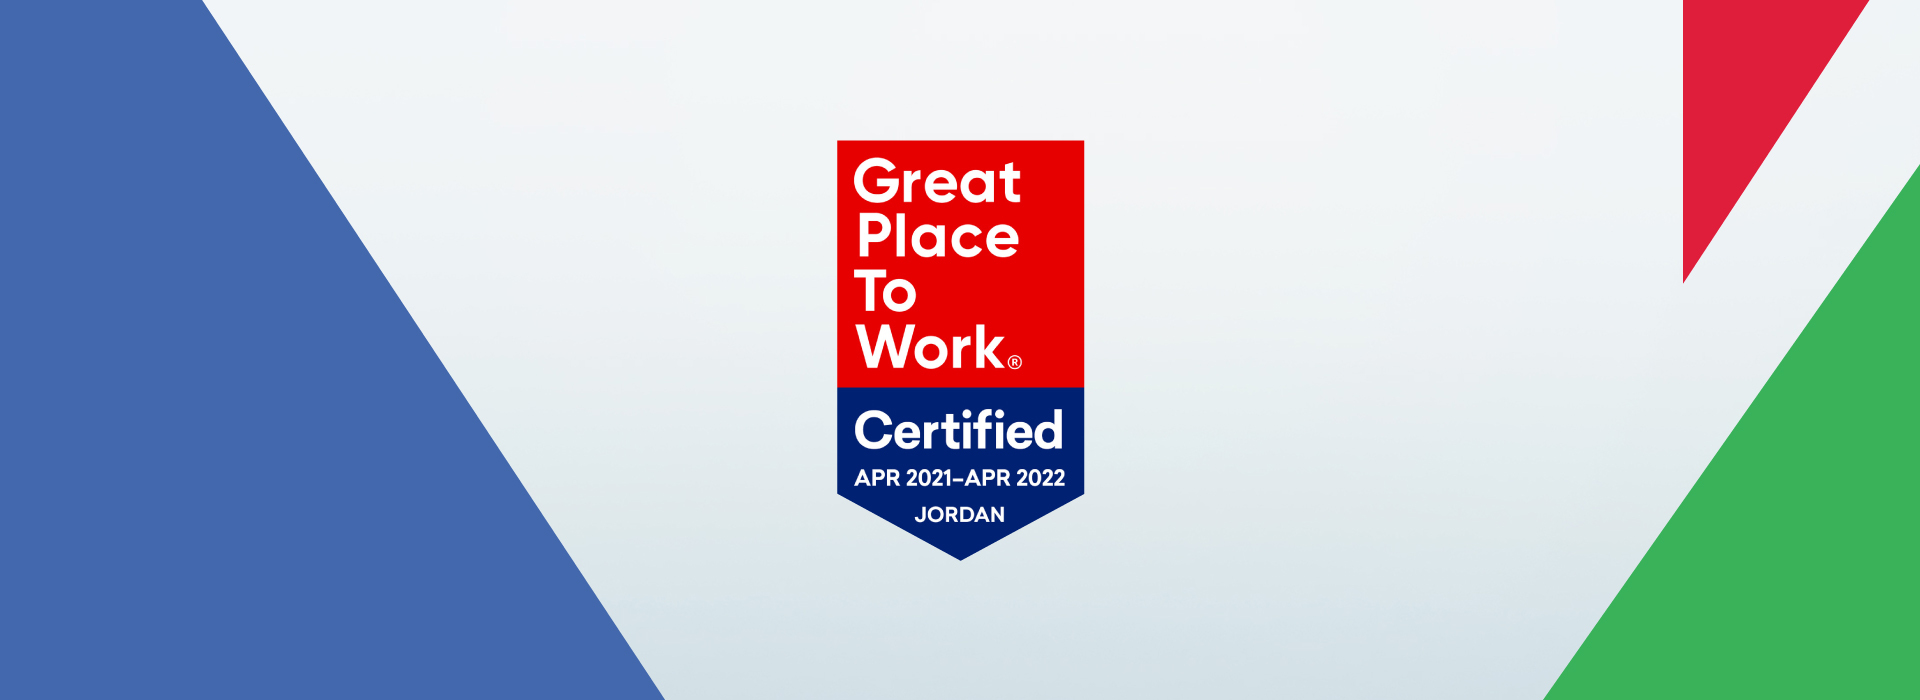 BABIL GAMES IS THE FIRST GREAT PLACE TO WORK IN JORDAN